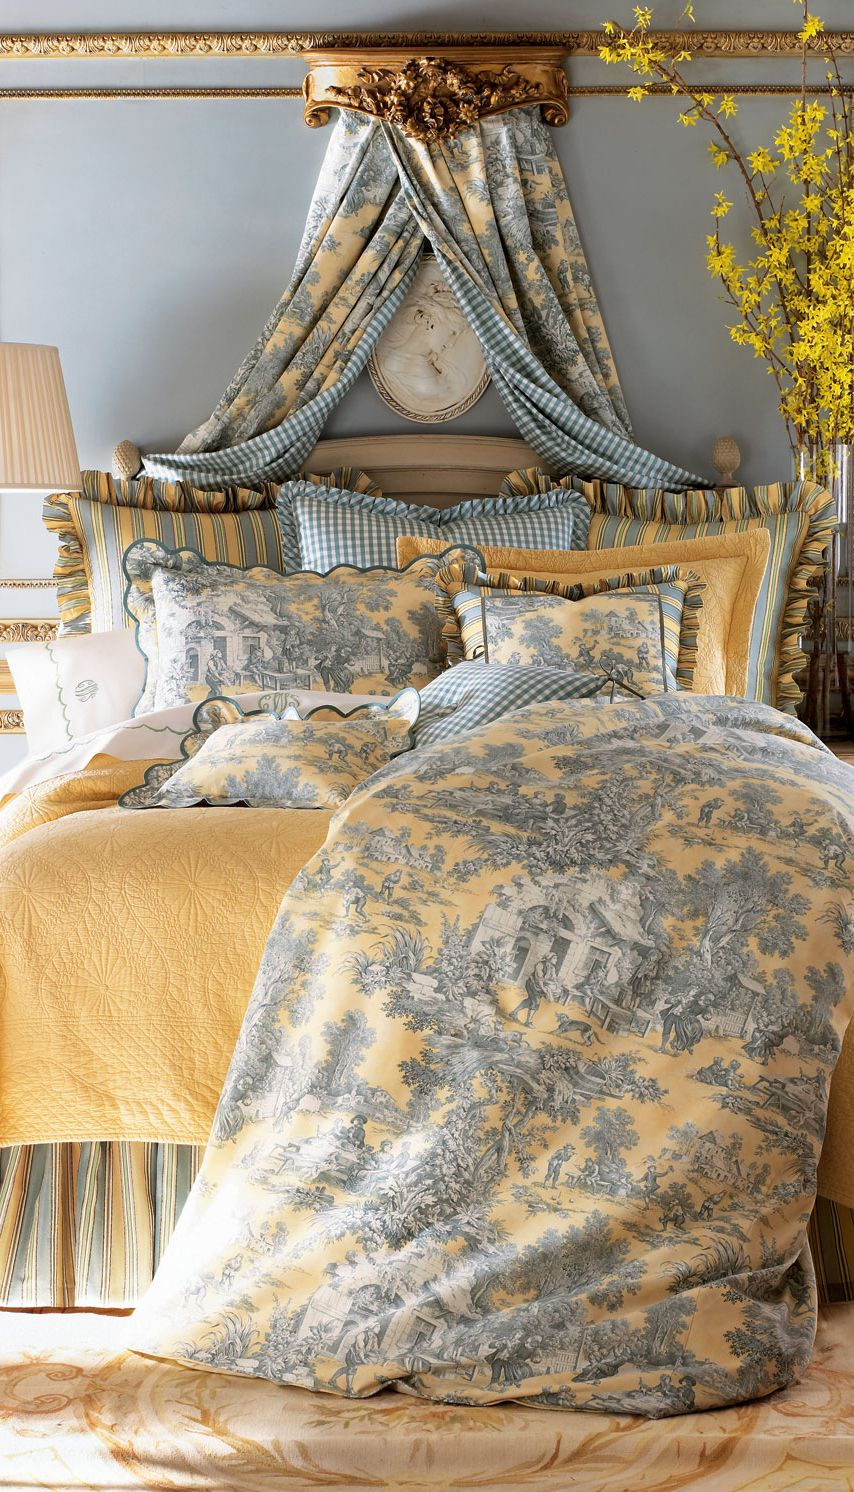 Toile Is One Of The Most Romantic Fabrics In A Bathroom Or Master